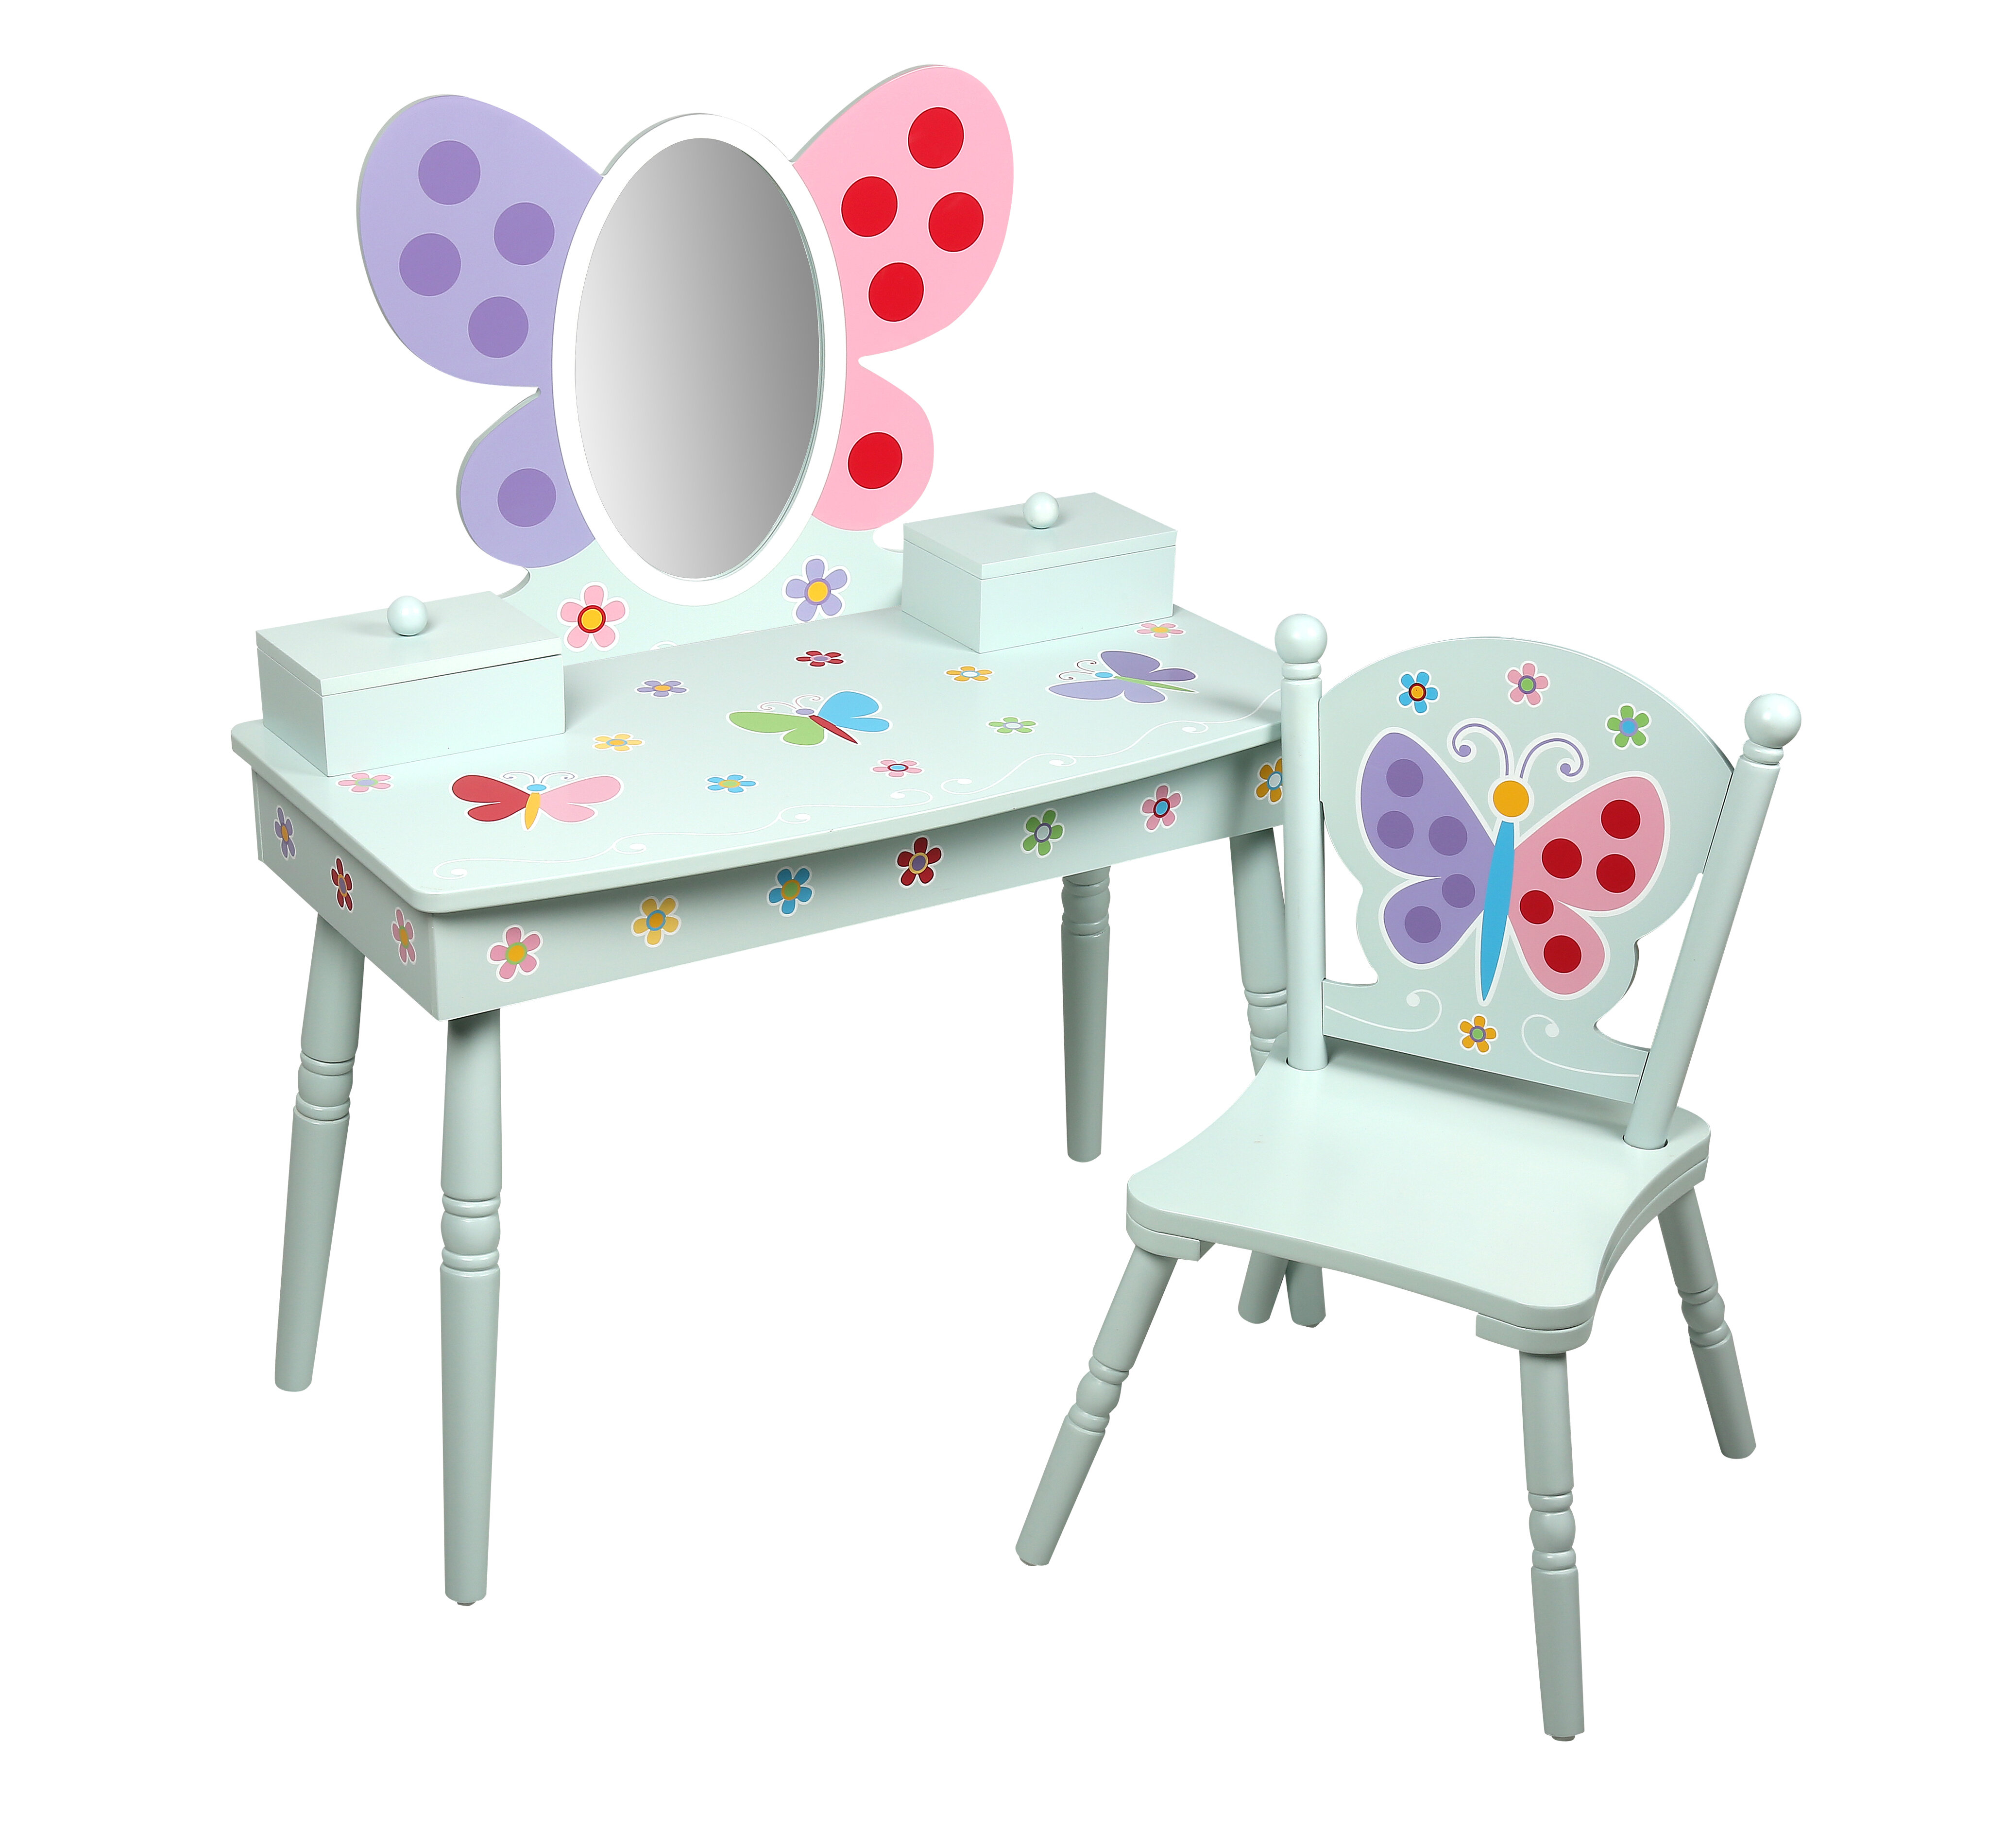 Levels Of Discovery Olive Butterfly Garden Kids Vanity Set With